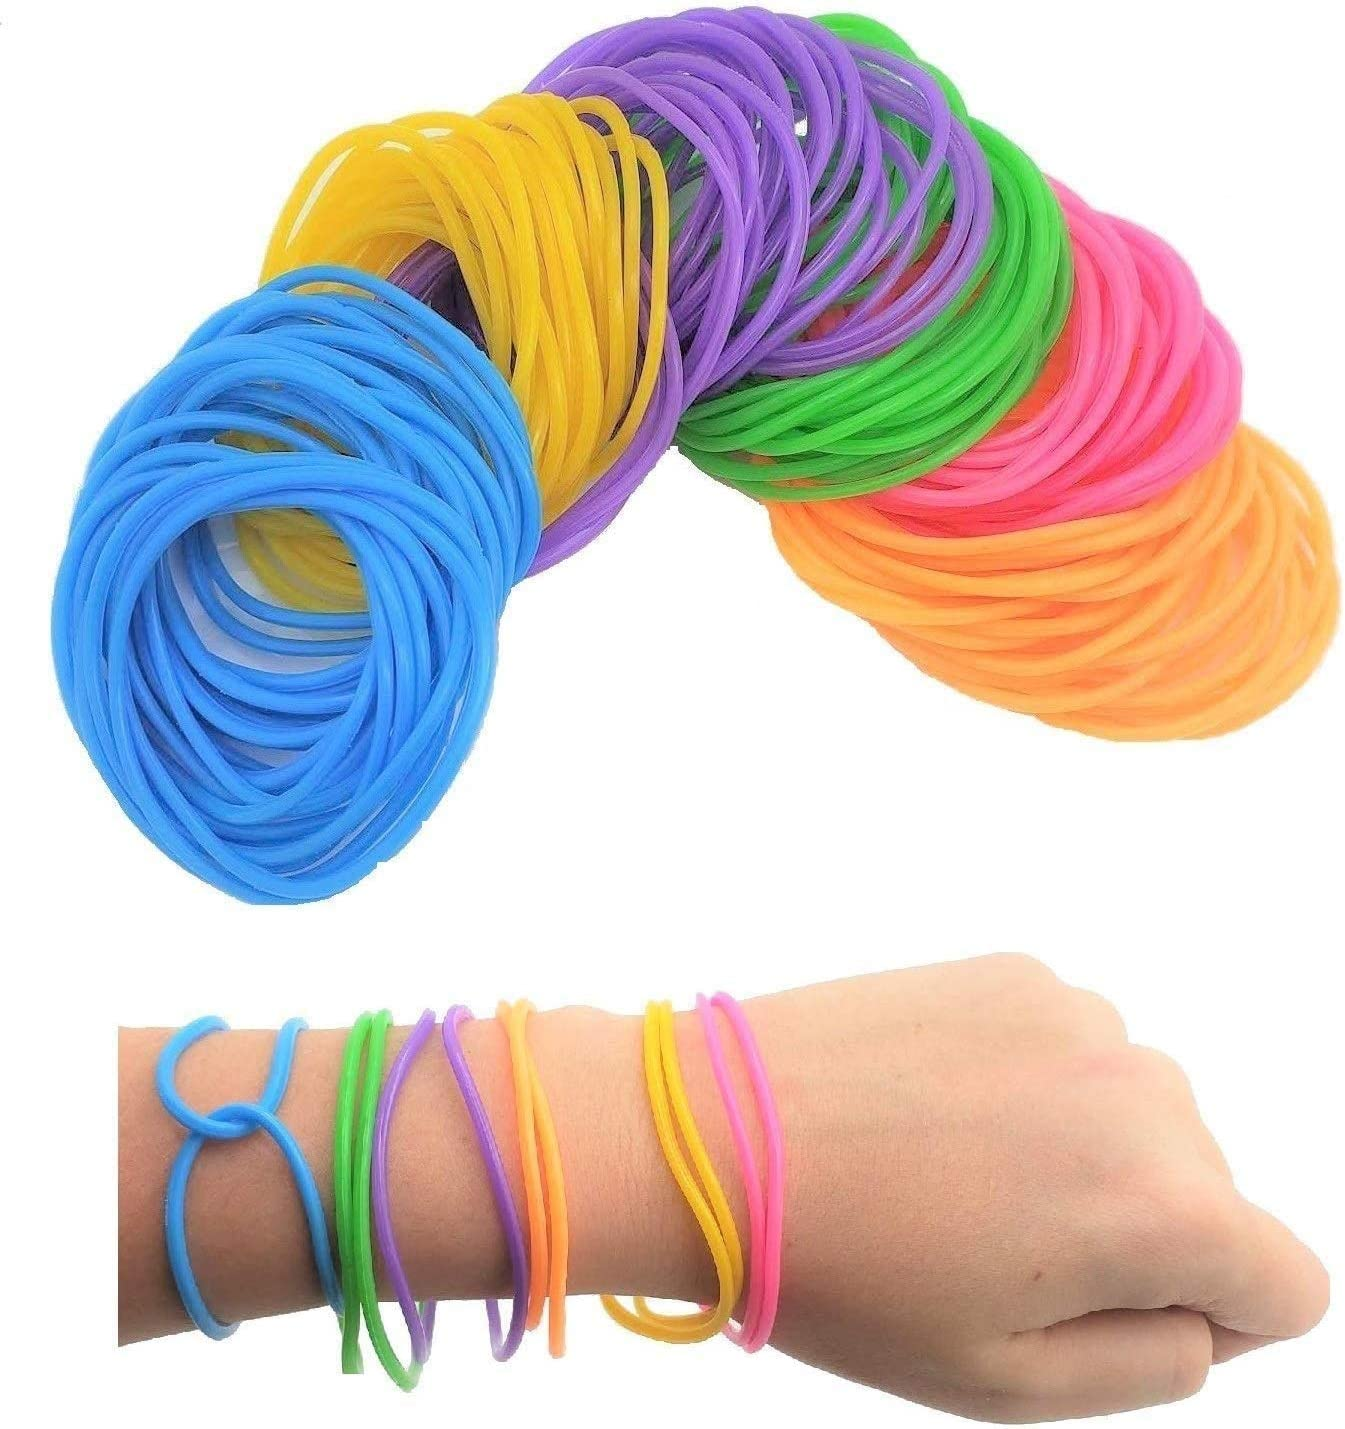 Zugar Land Latest item 80s Colorful Neon Stretchable 7